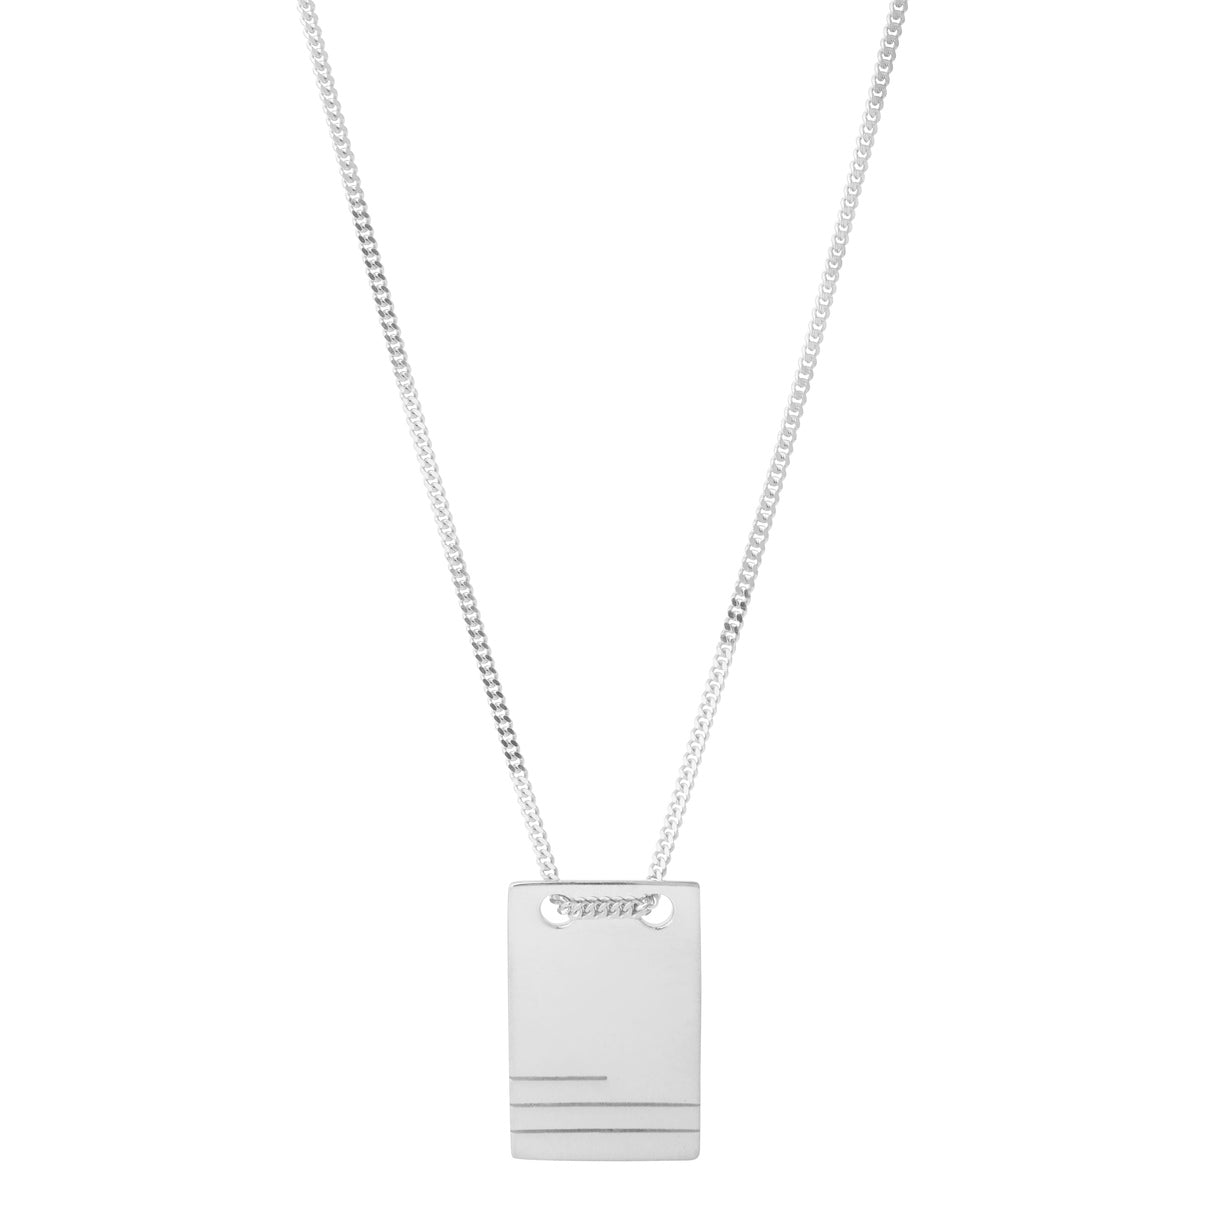 roben-necklace-silver-maria-black